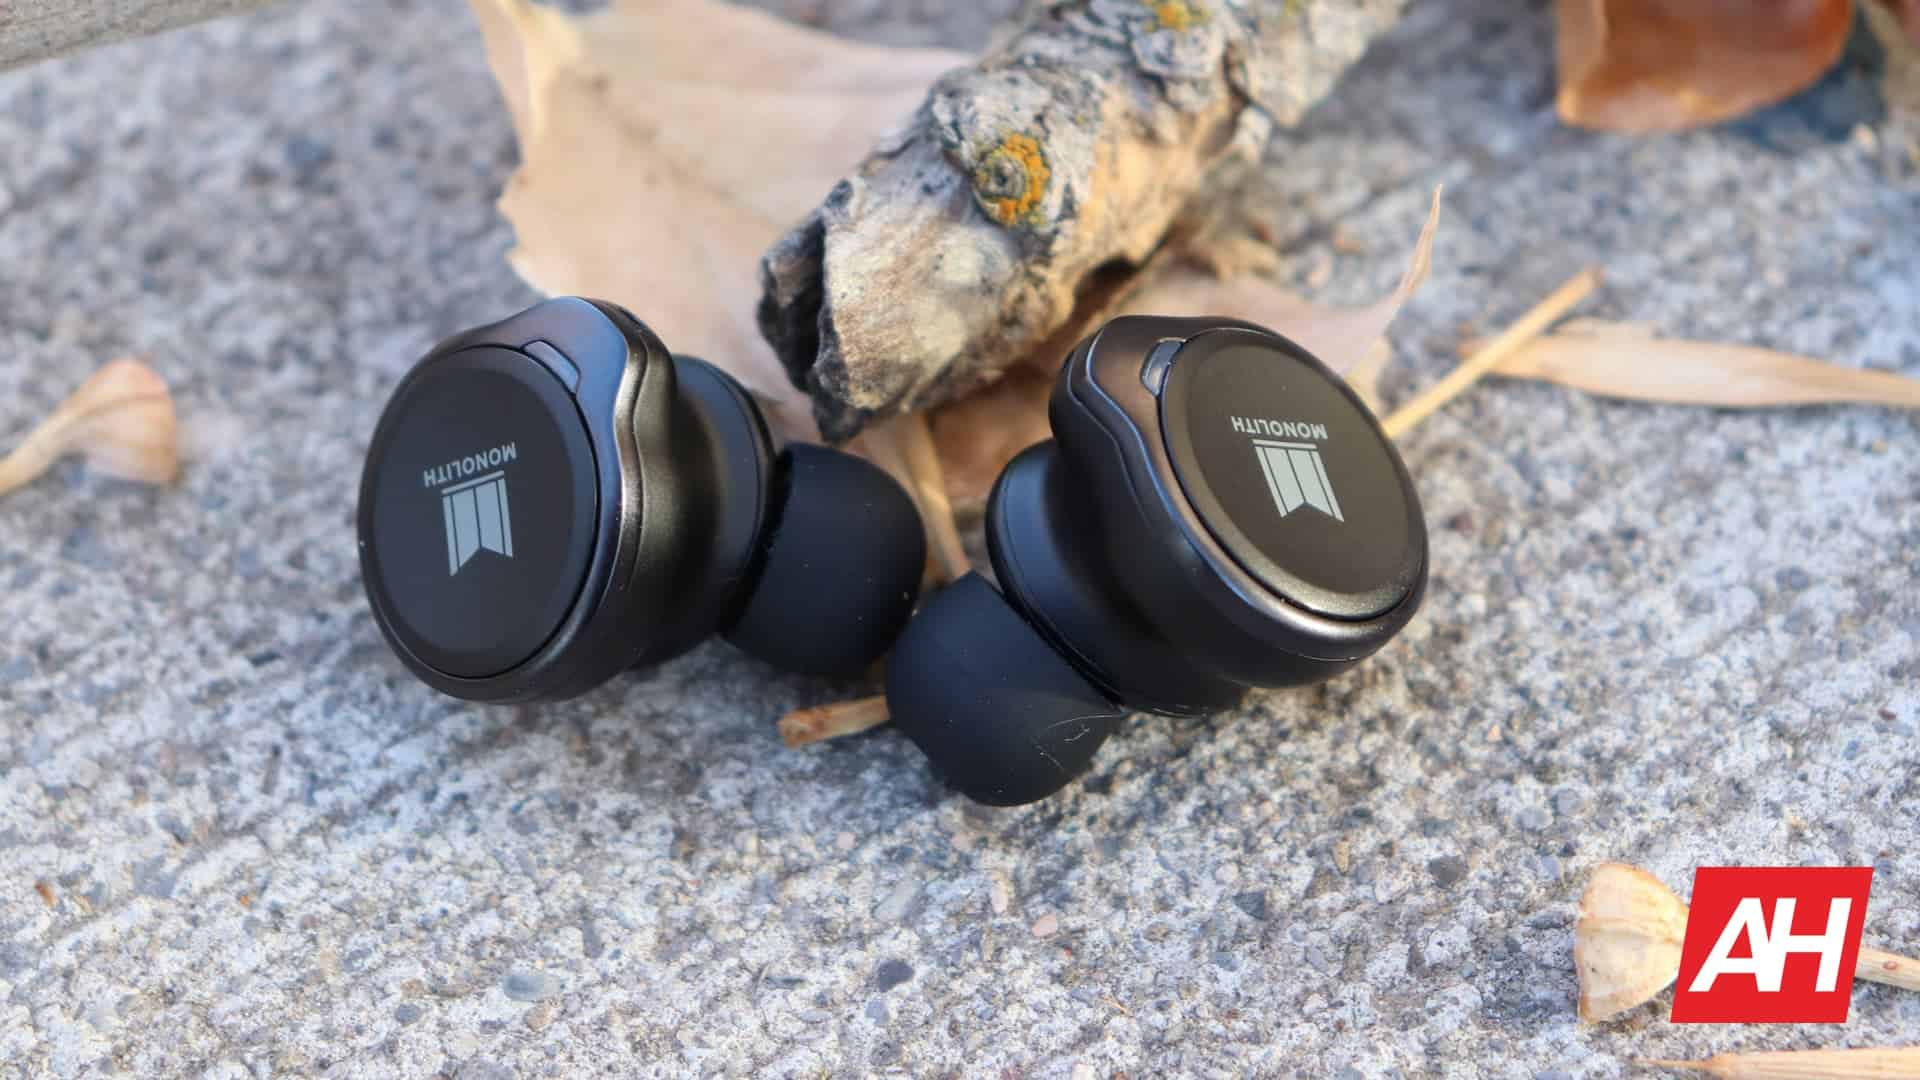 06 Monoprice M TWE Monolith TrueWireless Earphones review final DG AH 2020